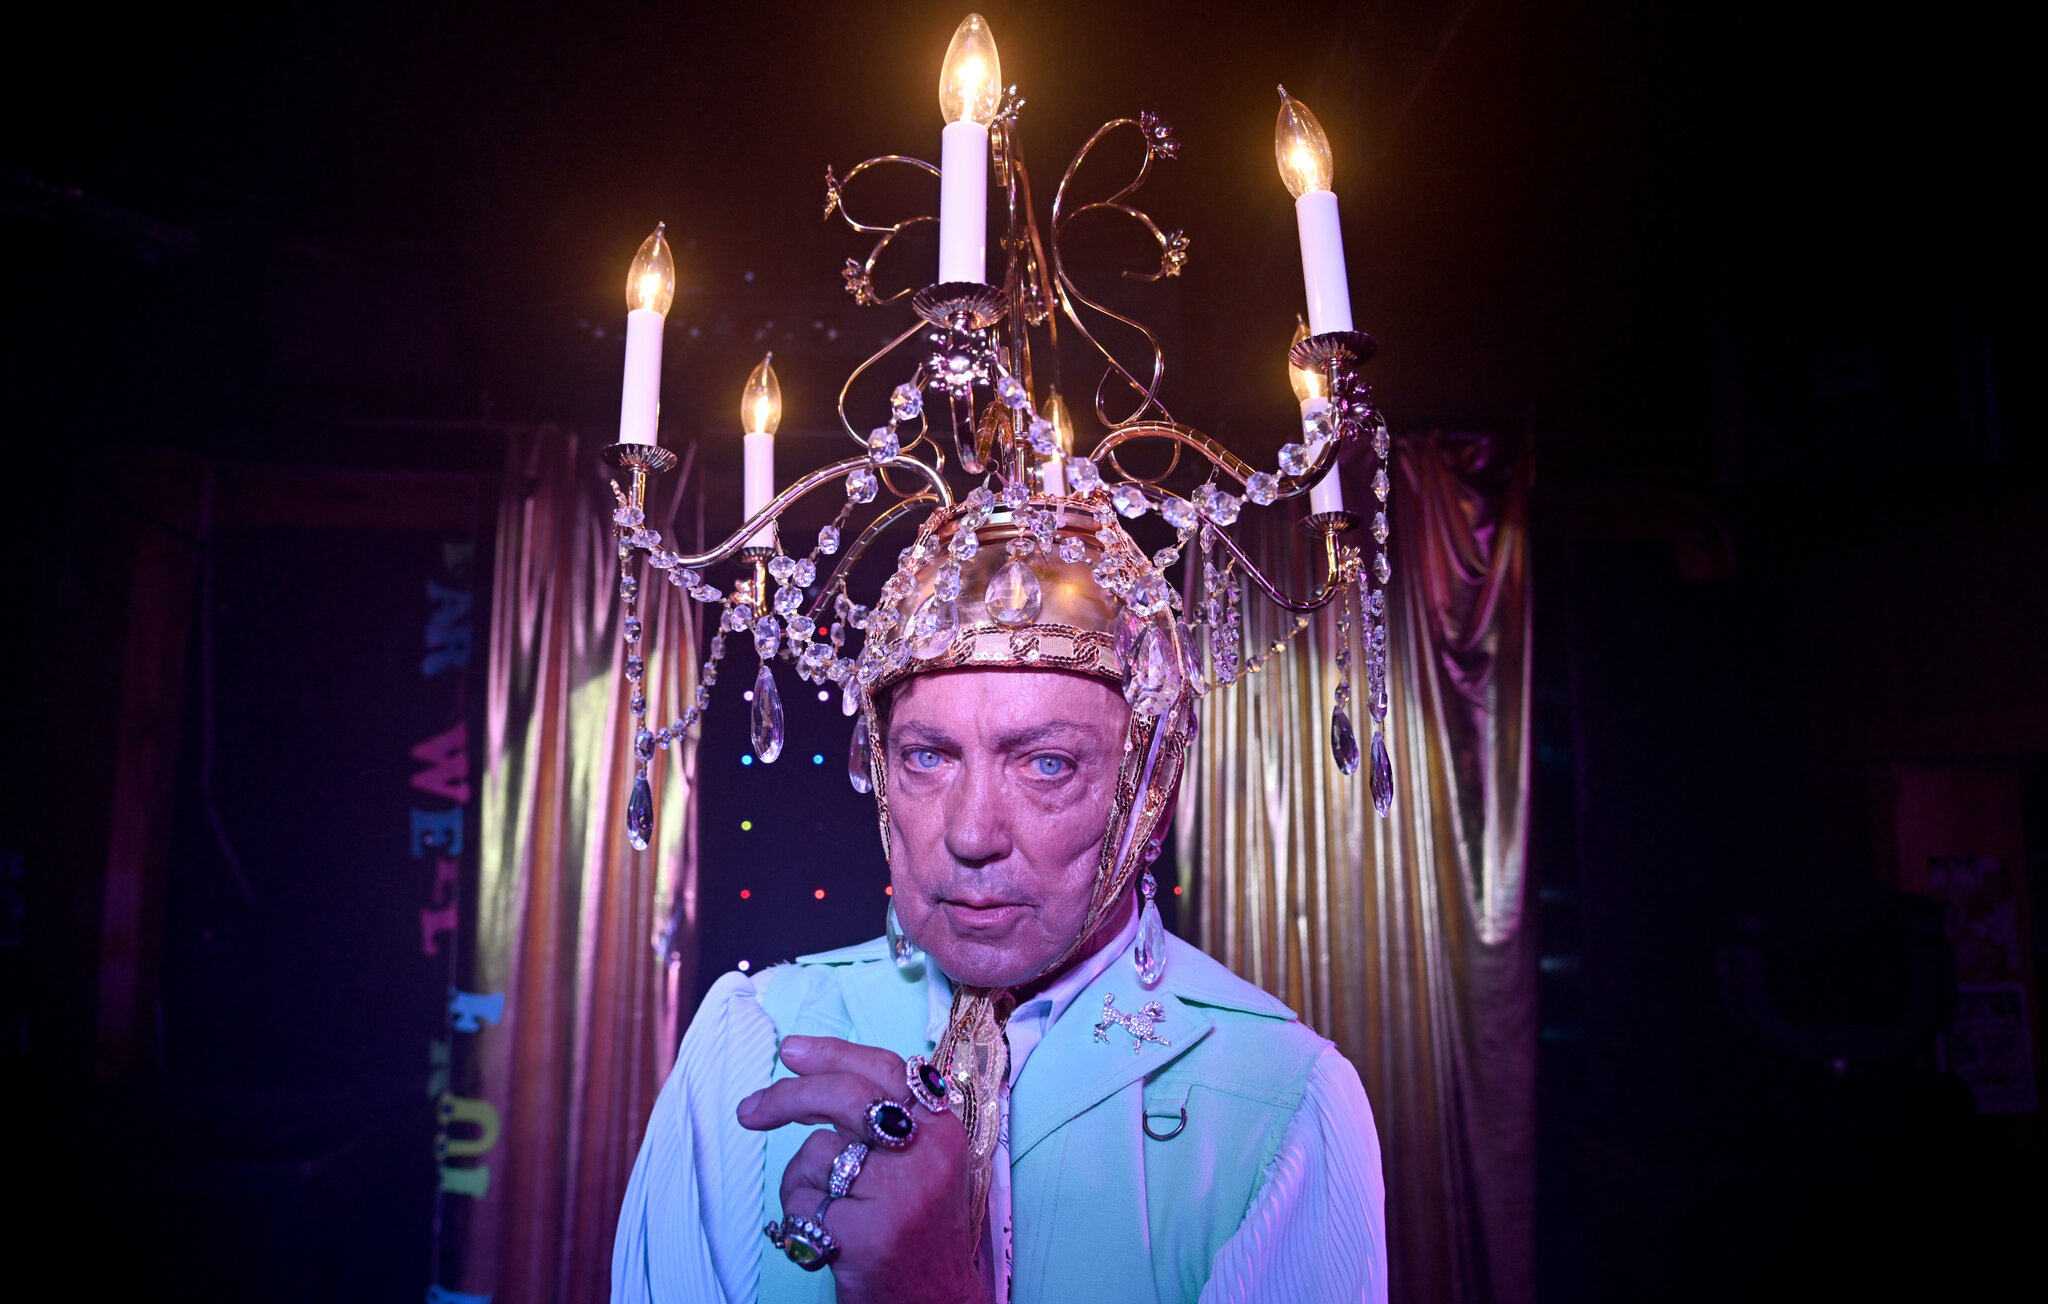 With a candelabra adorned upon his head, Pat performs at a local drag bar for one more shindig before its foreclosure.